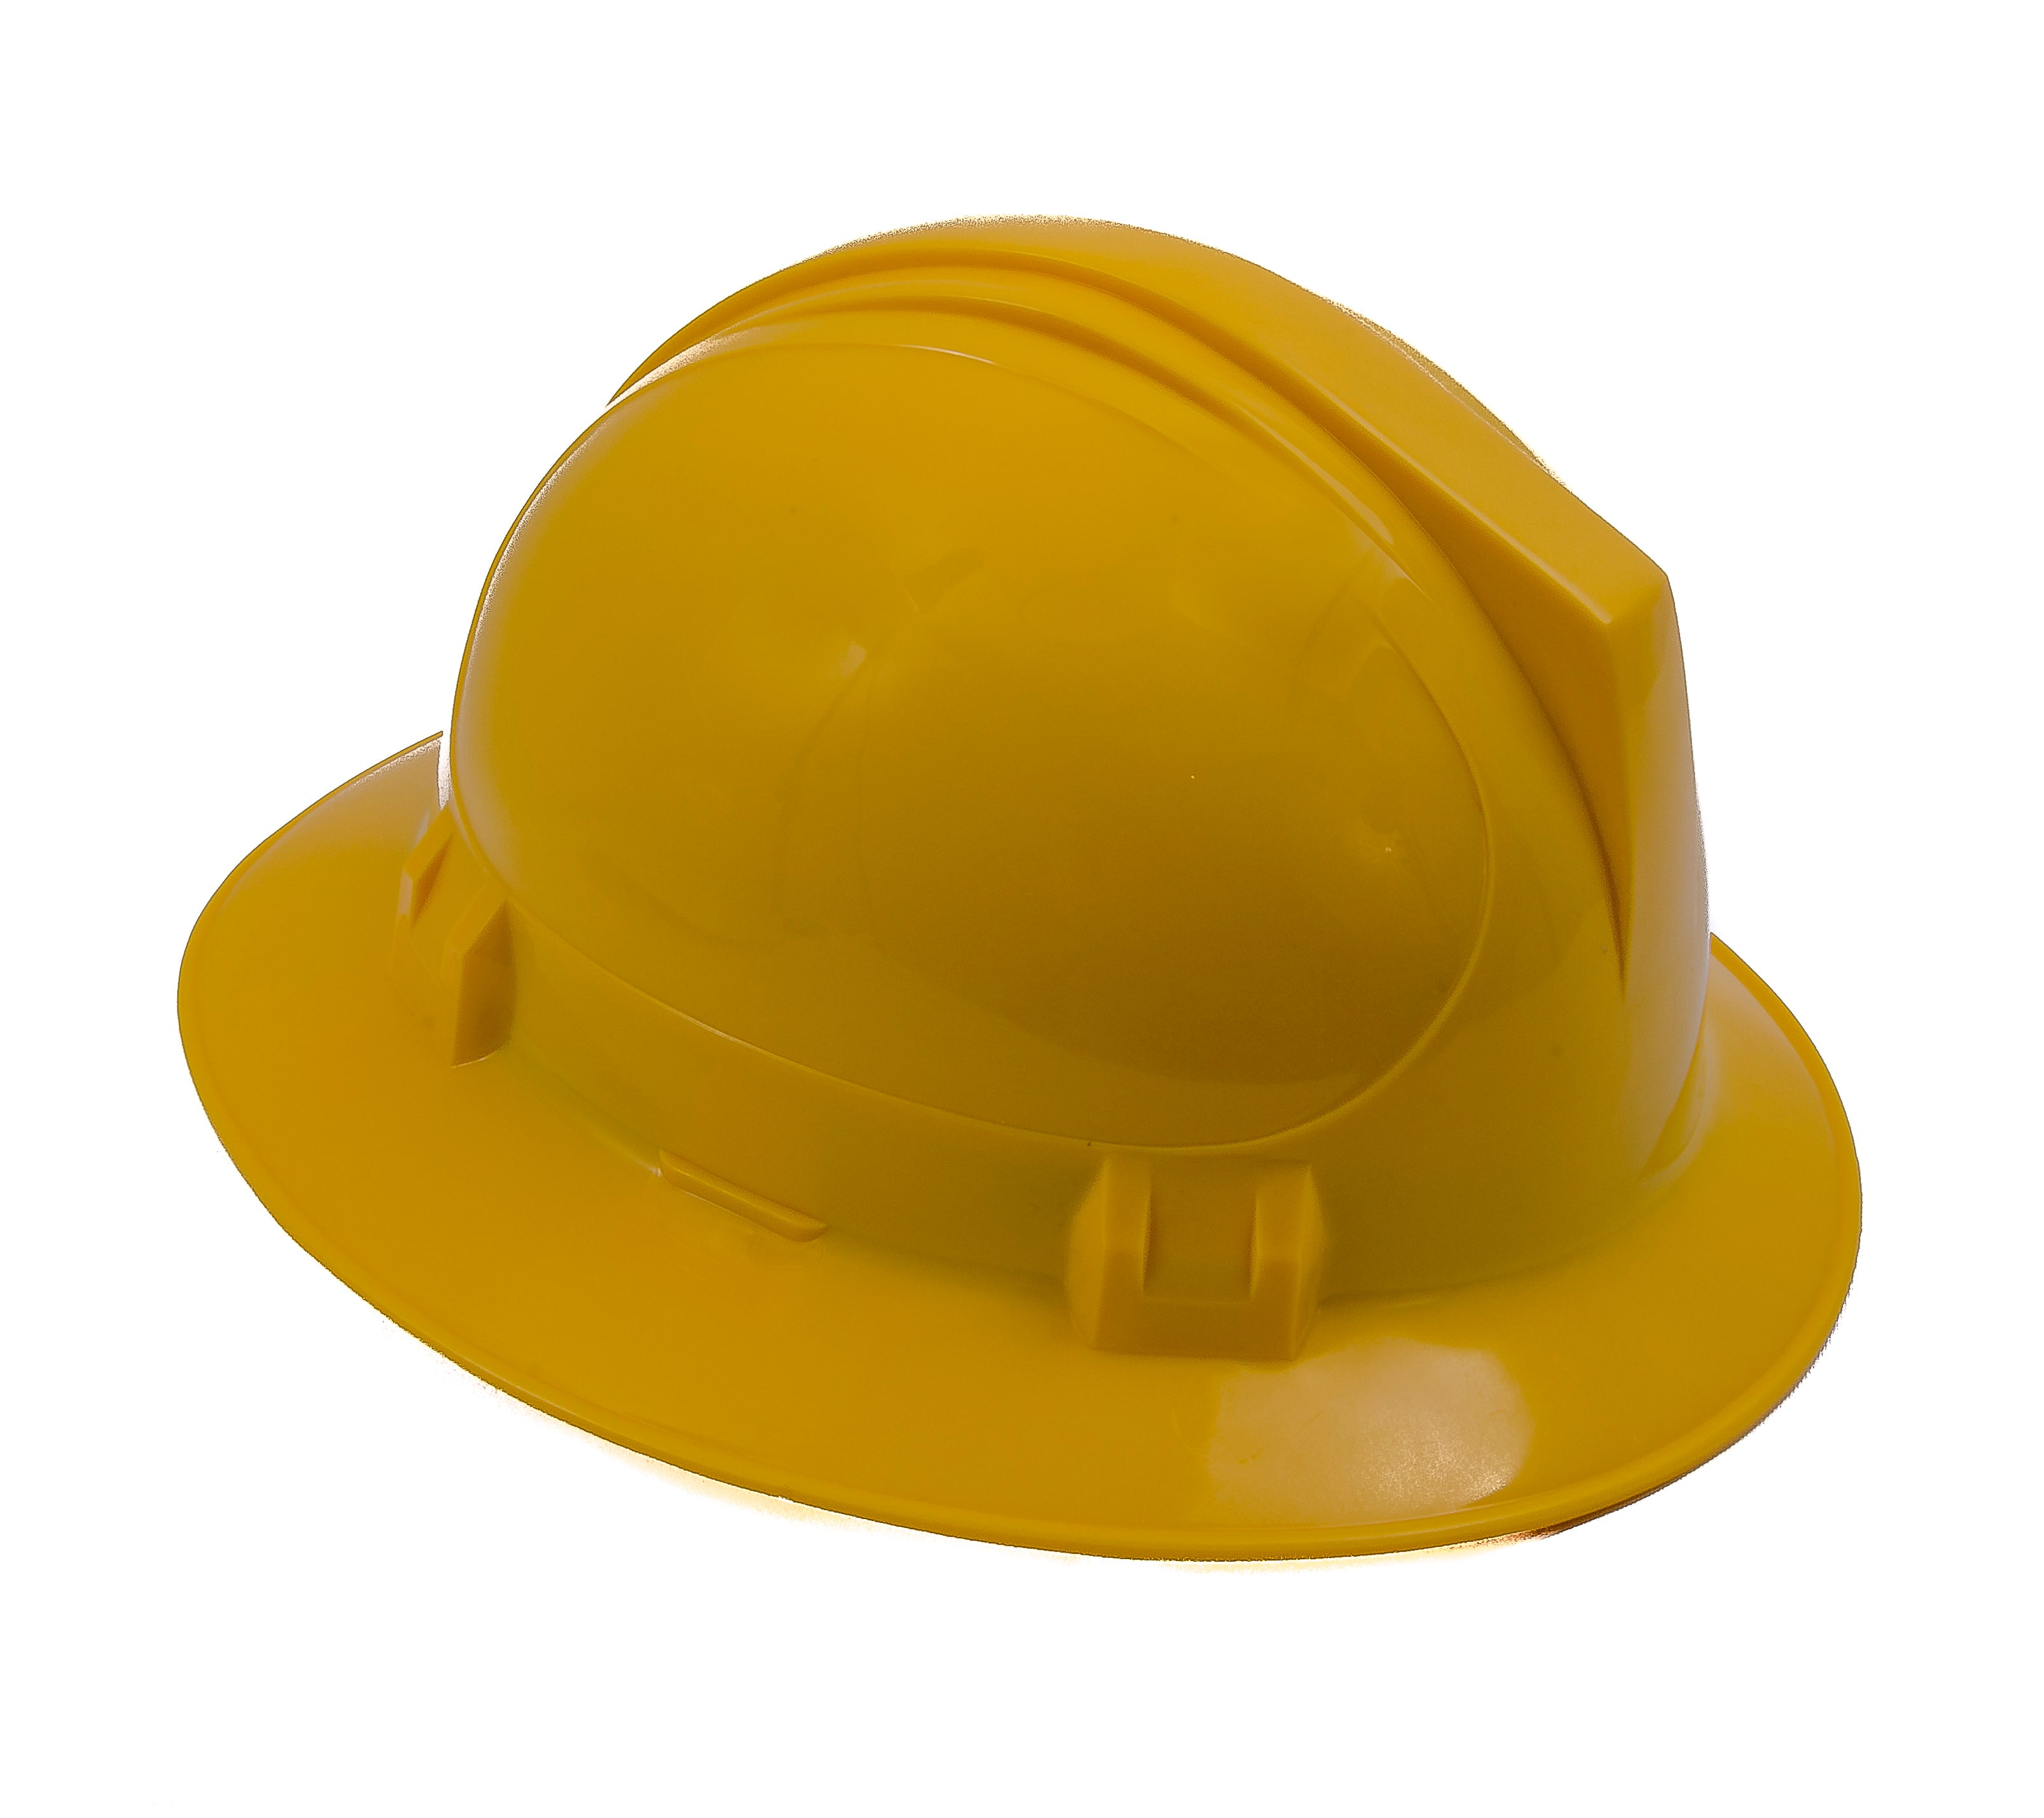 CASCO DE SEGURIDAD ALA ANCHA AJUSTE DE MATRACA GEO-TEC WILLSON-Amarillo